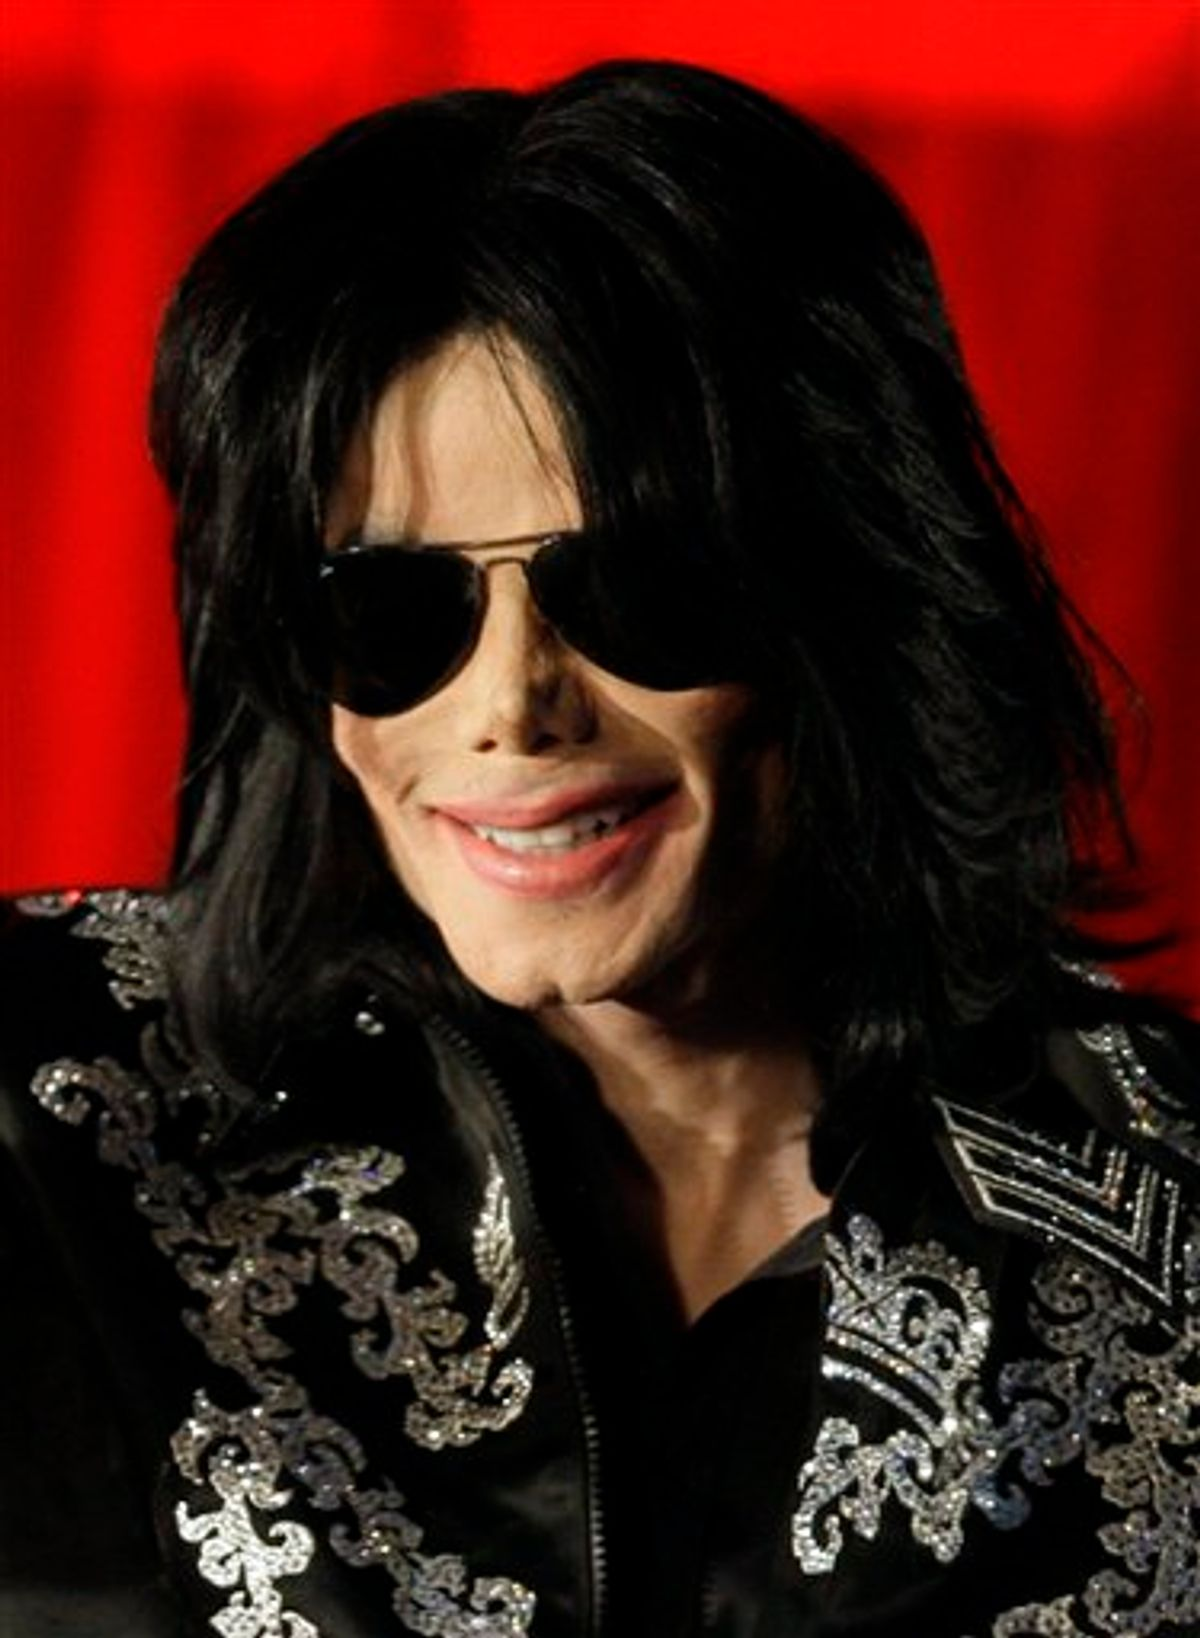 FILE - In this March 5, 2009 file photo, US singer Michael Jackson is shown at a press conference in London.  (AP Photo/Joel Ryan, file)    (AP)